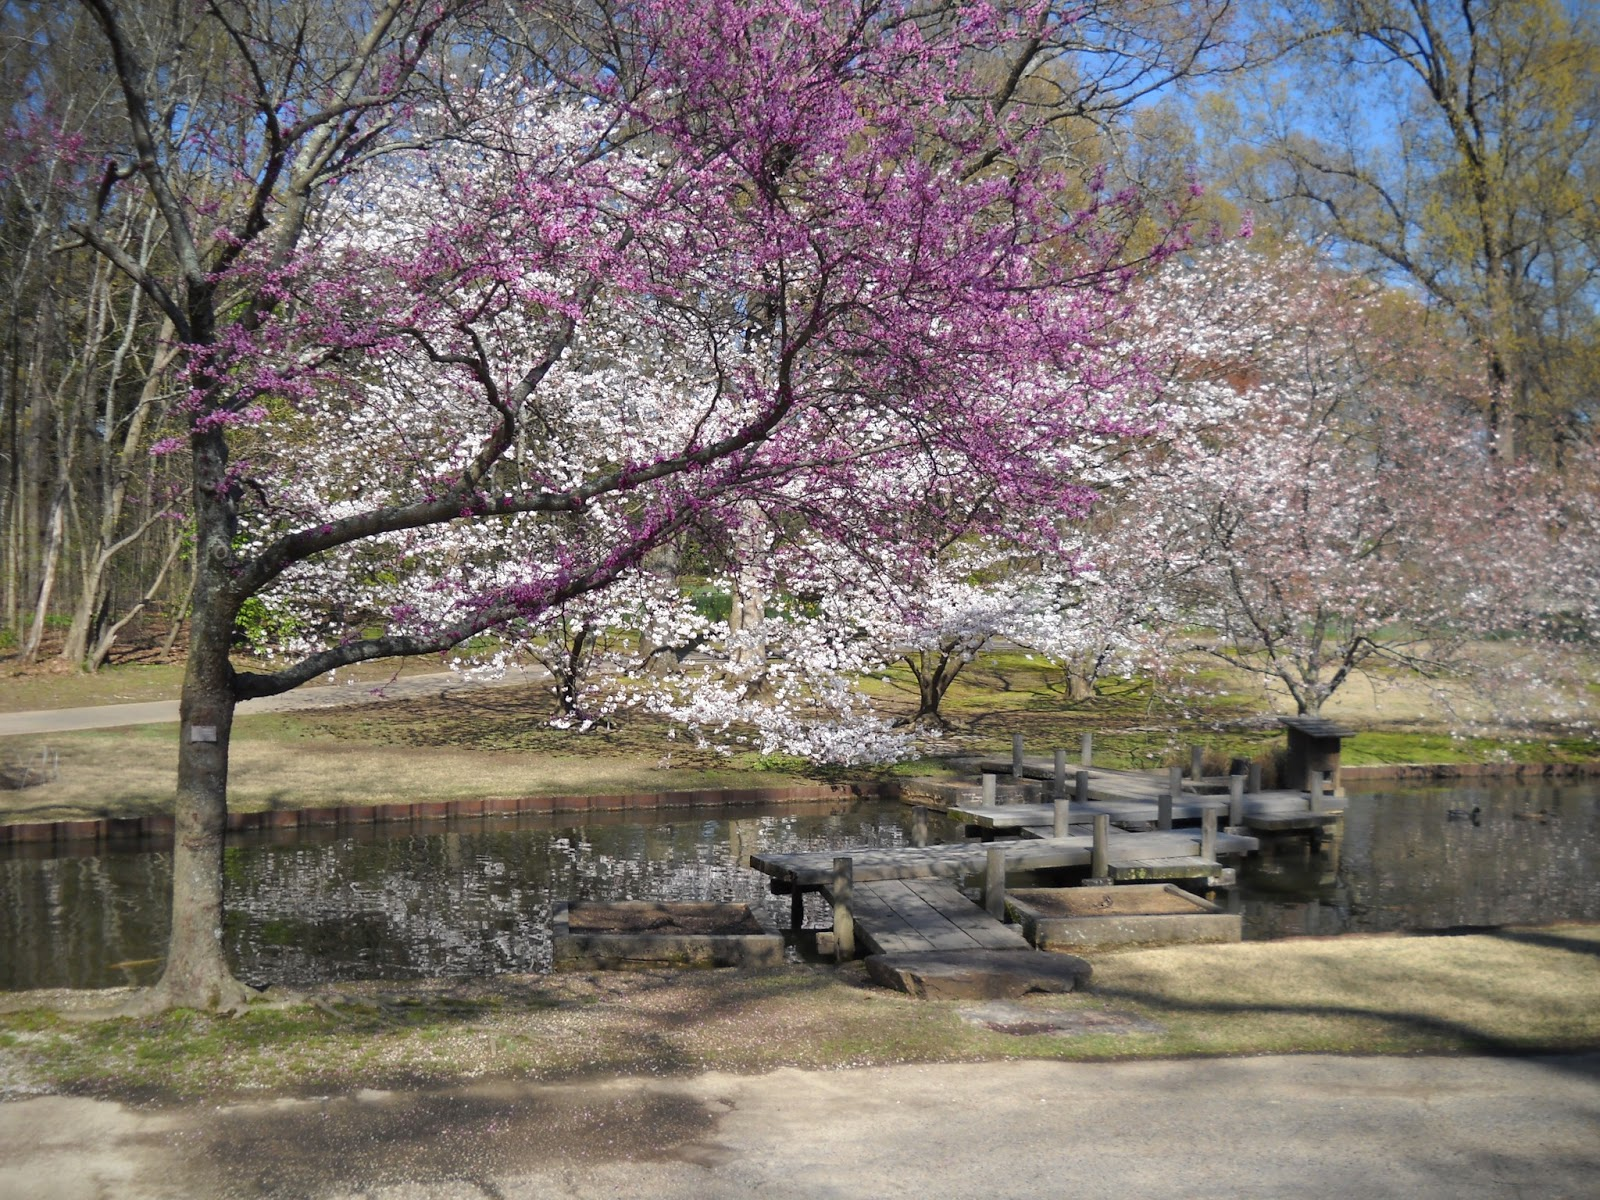 Divers and sundry redbuds and daffodils at the memphis for Garden trees memphis